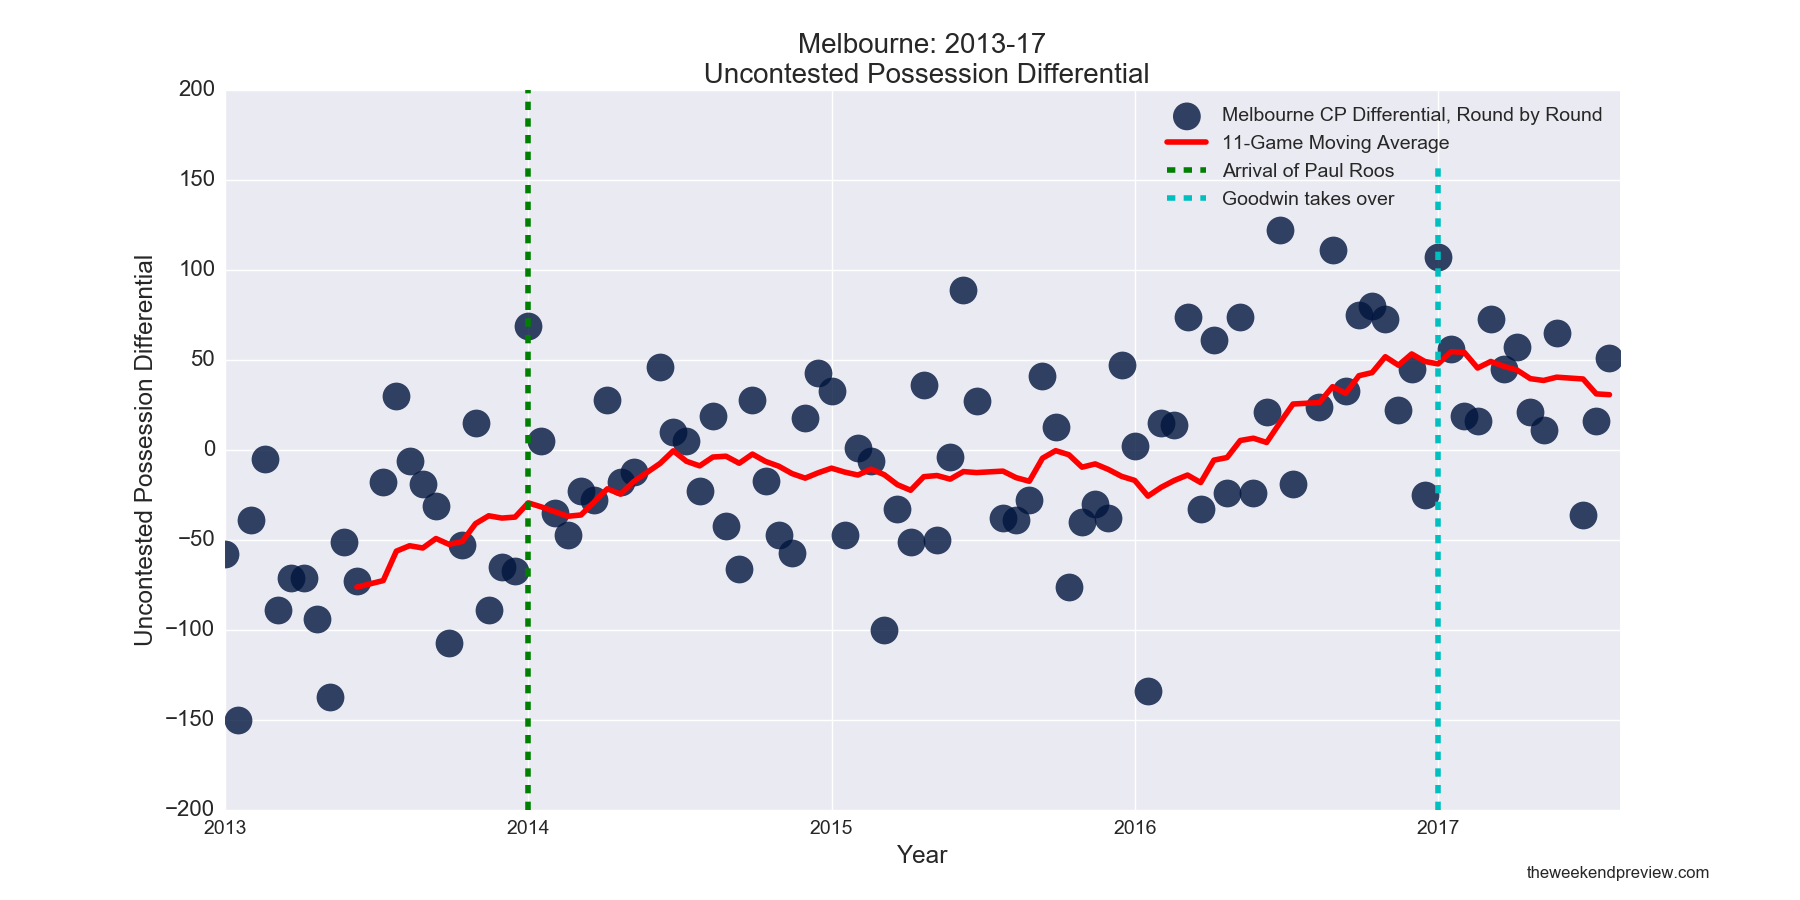 Figure-8: Melbourne Uncontested Possession Differential in Paul Roos Era